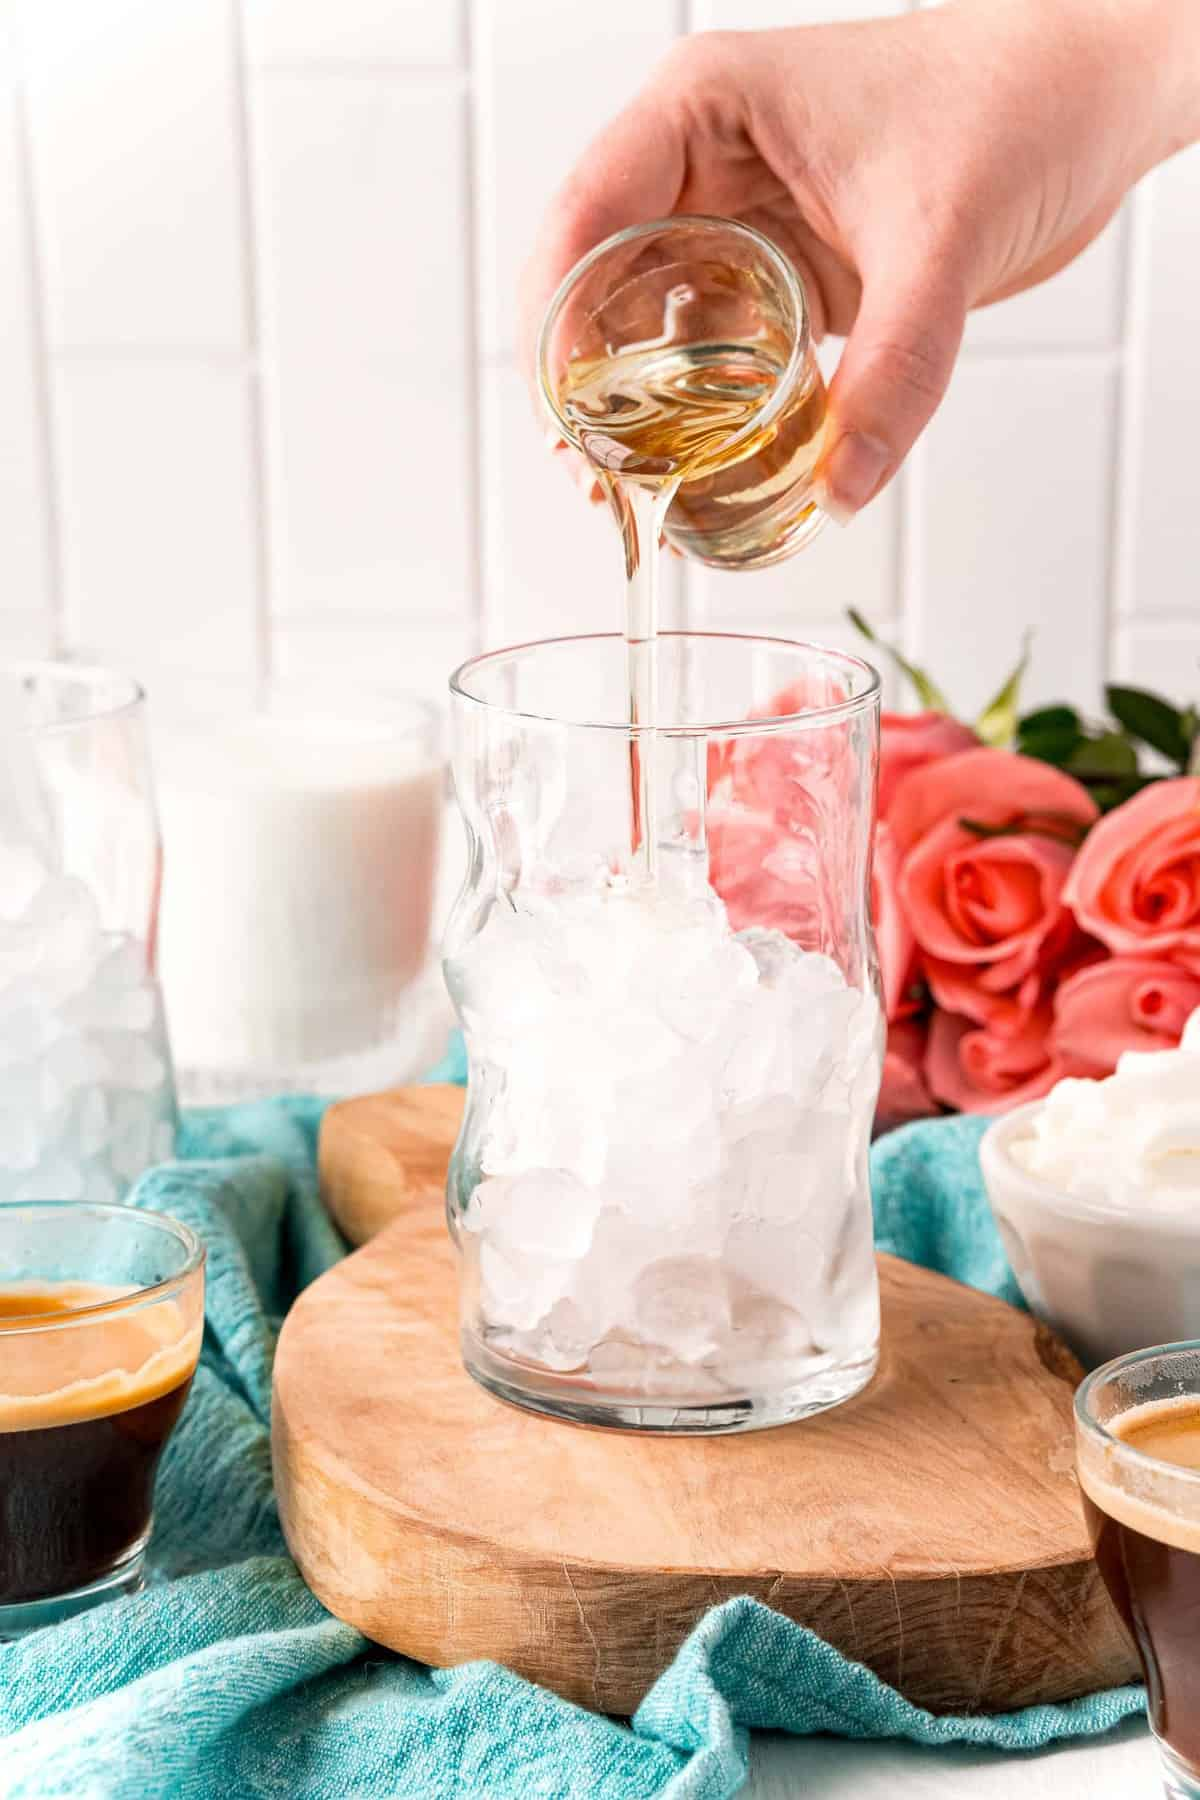 Syrup being poured into a glass with ice.